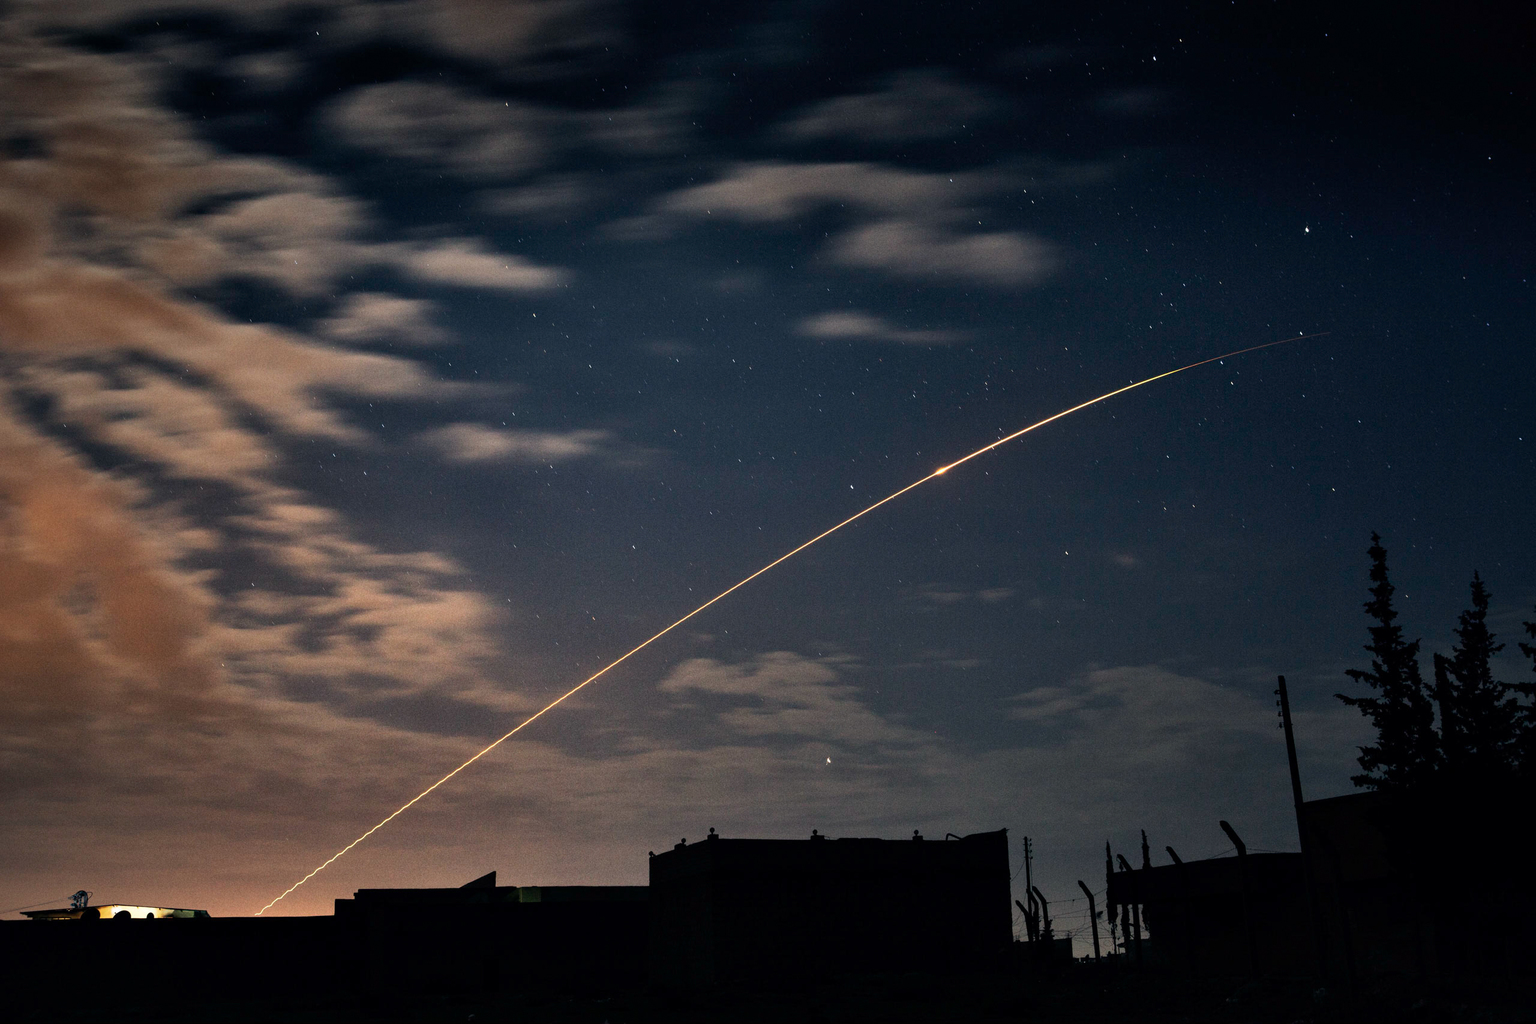 April 18, 2013, Naqqarin, Aleppo. I counted more than fifty rockets fired by Syrian Government forces that night. They arced silently up through the clouds toward the northern countryside of Aleppo.